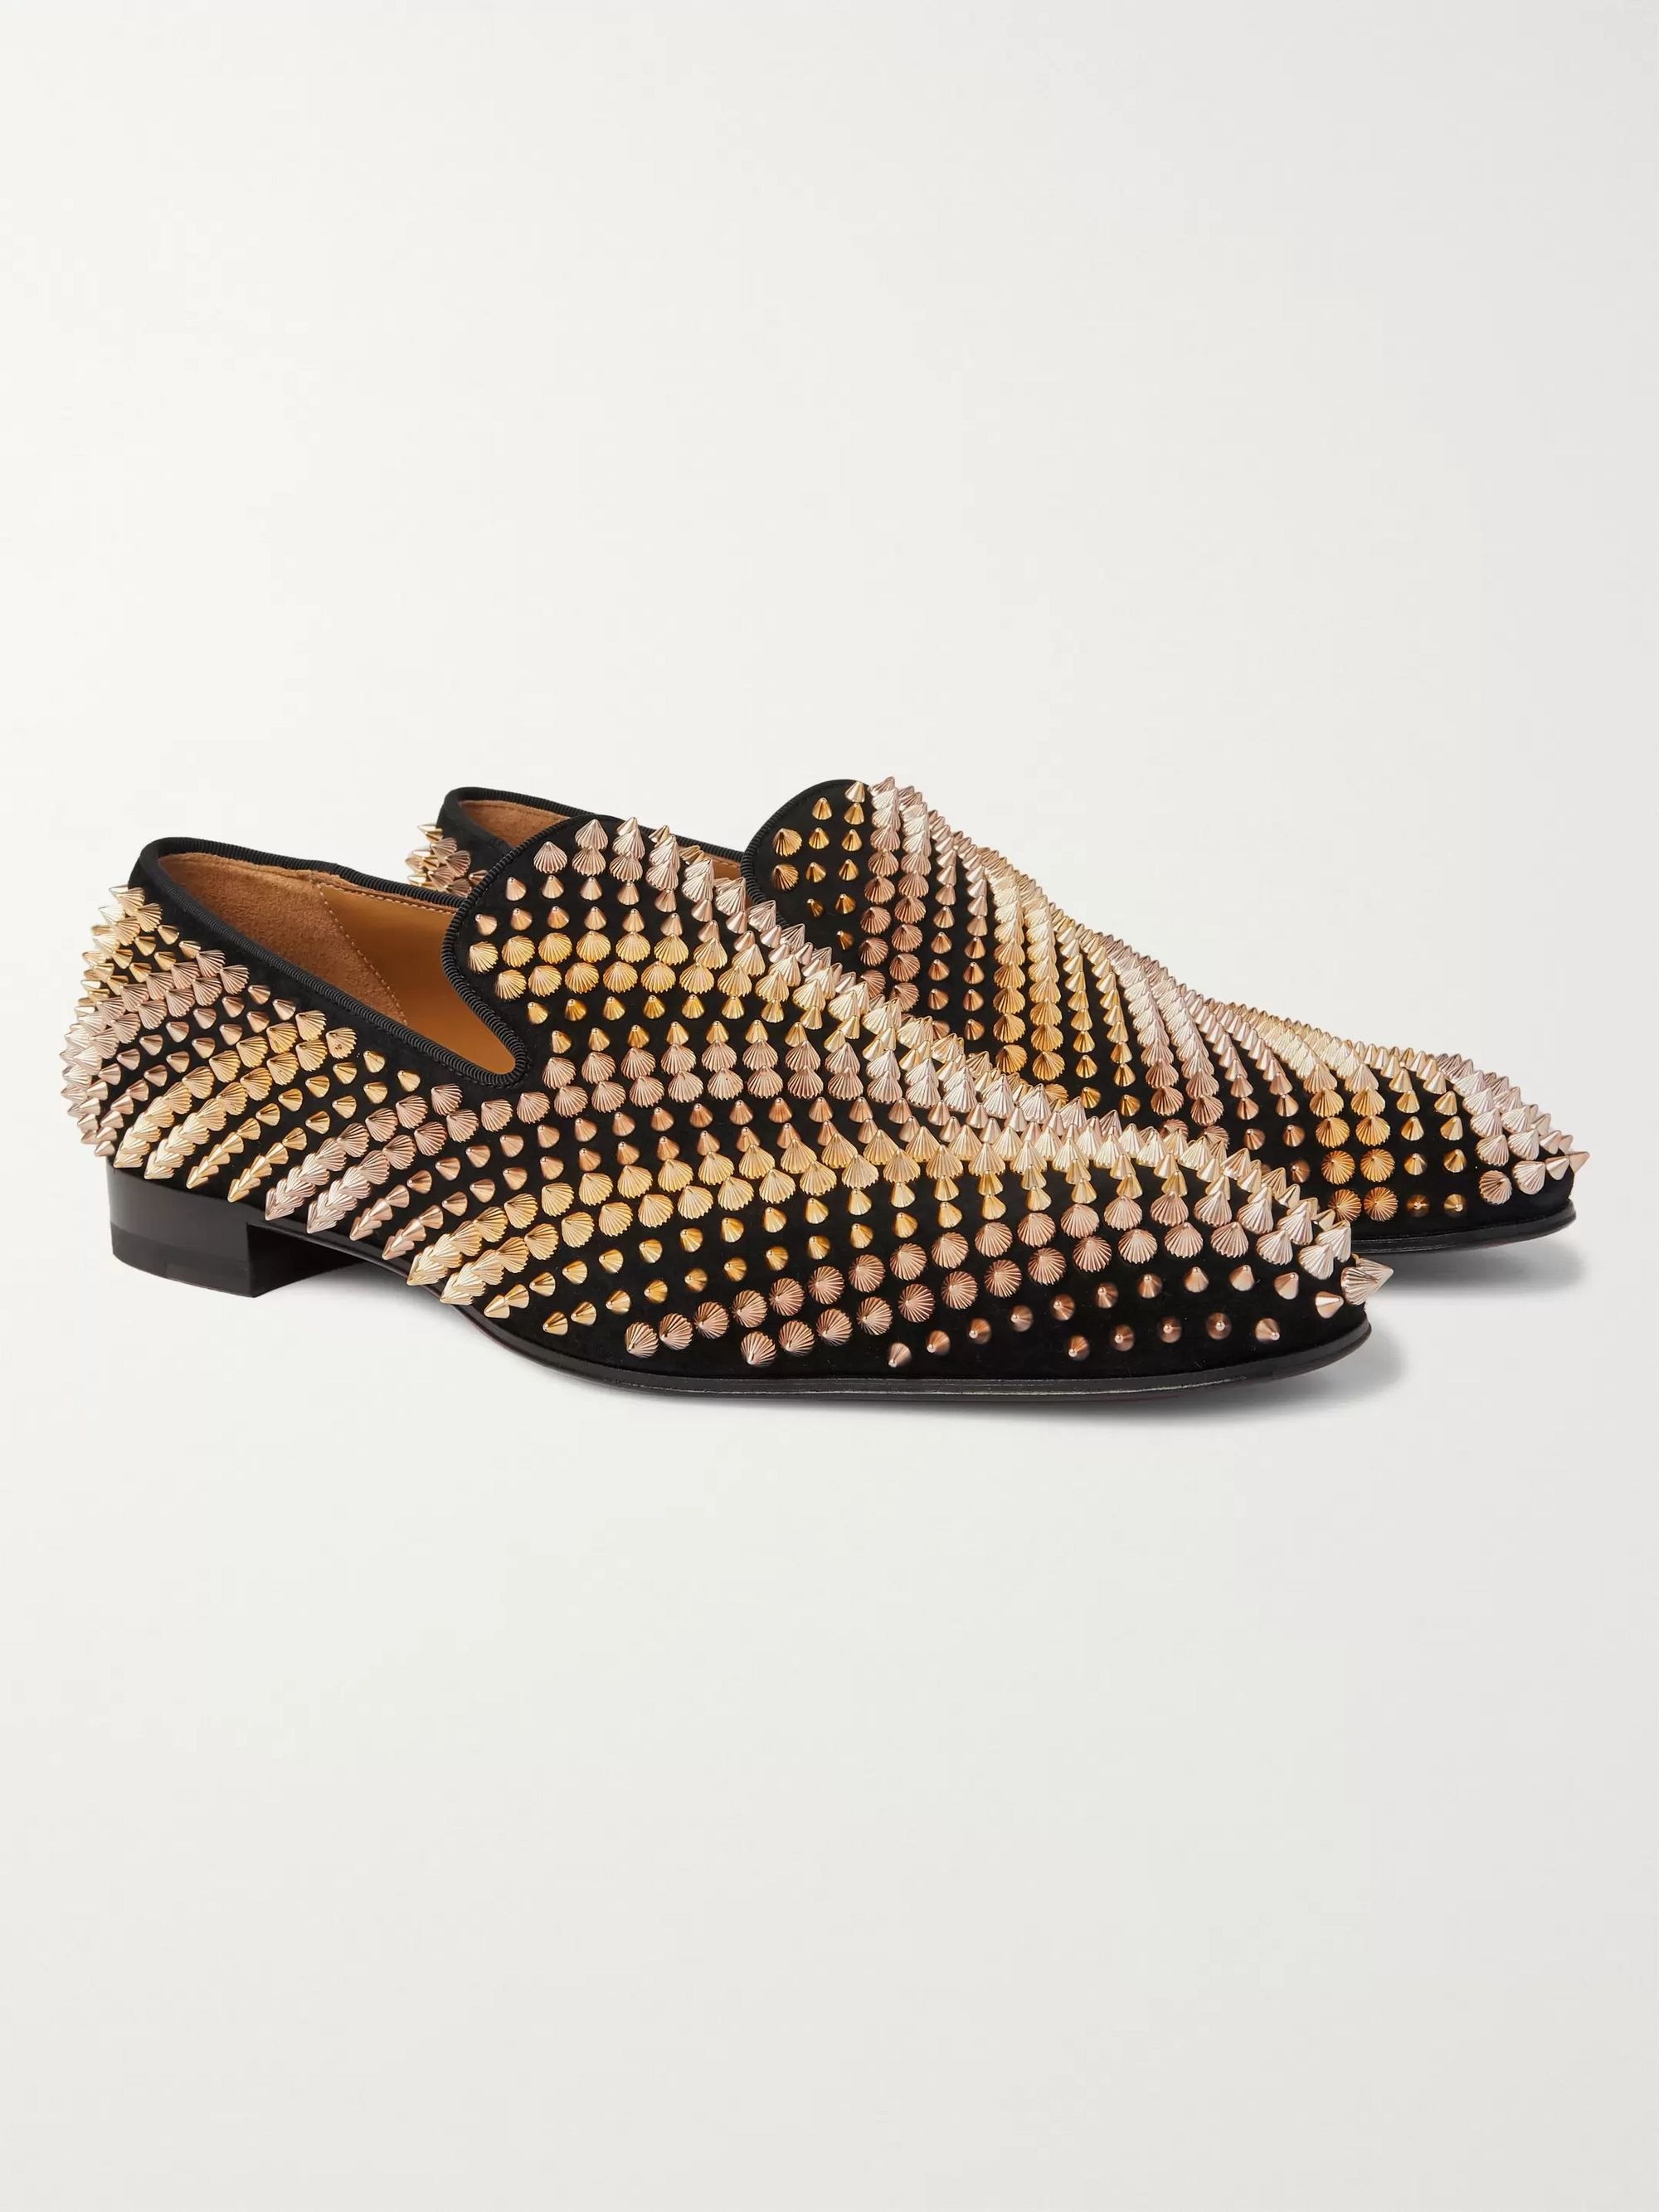 Black Studded Suede Loafers | Christian